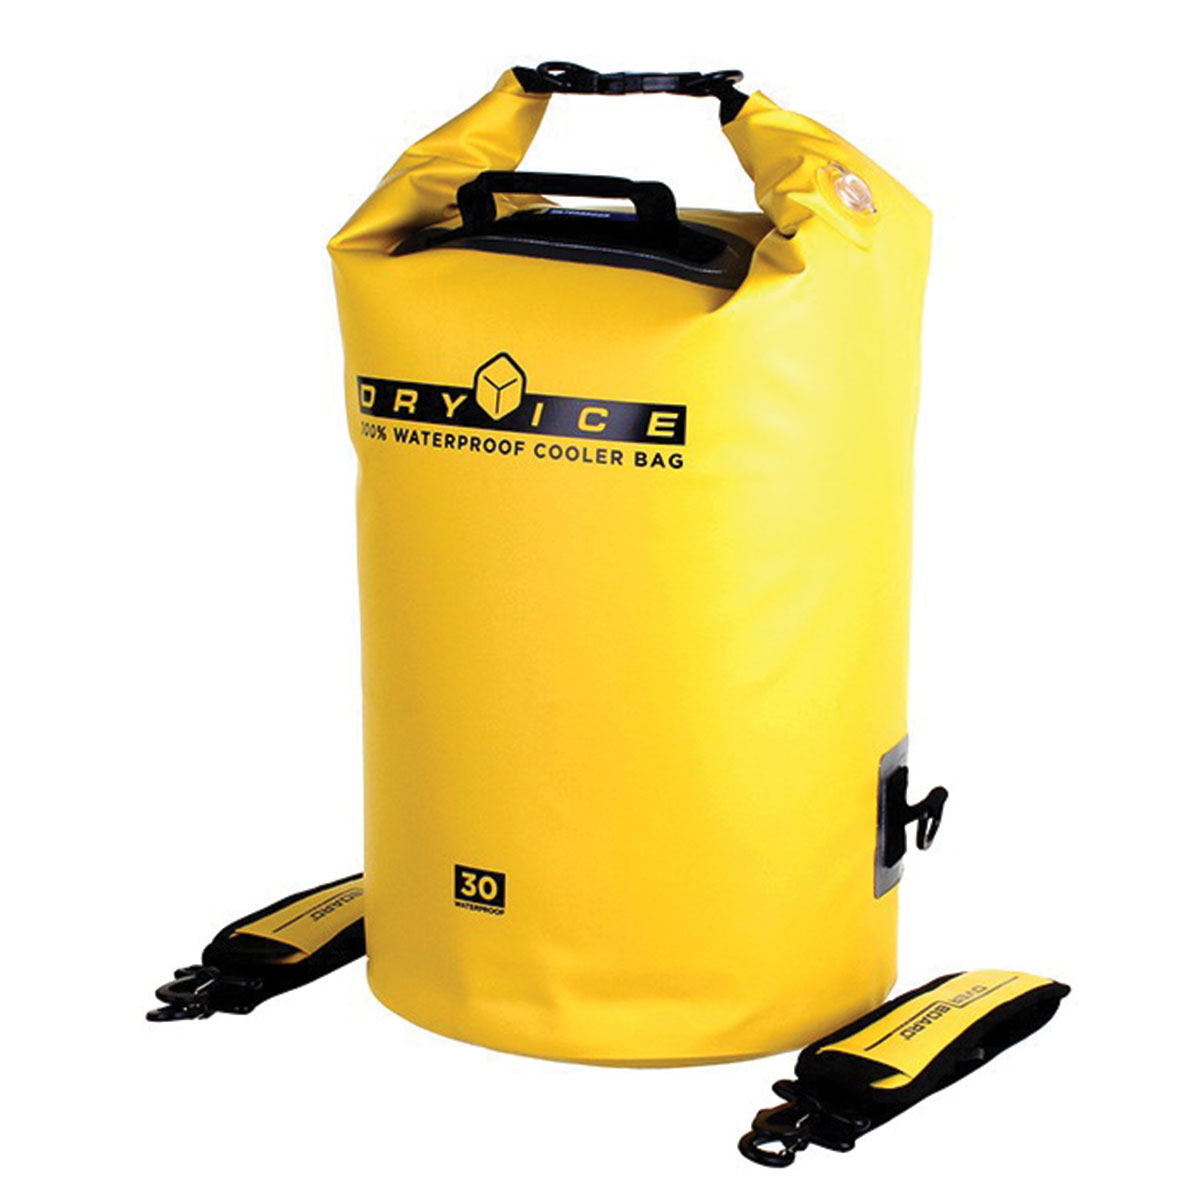 30 Litre Dry Ice Cooler Bag Yellow